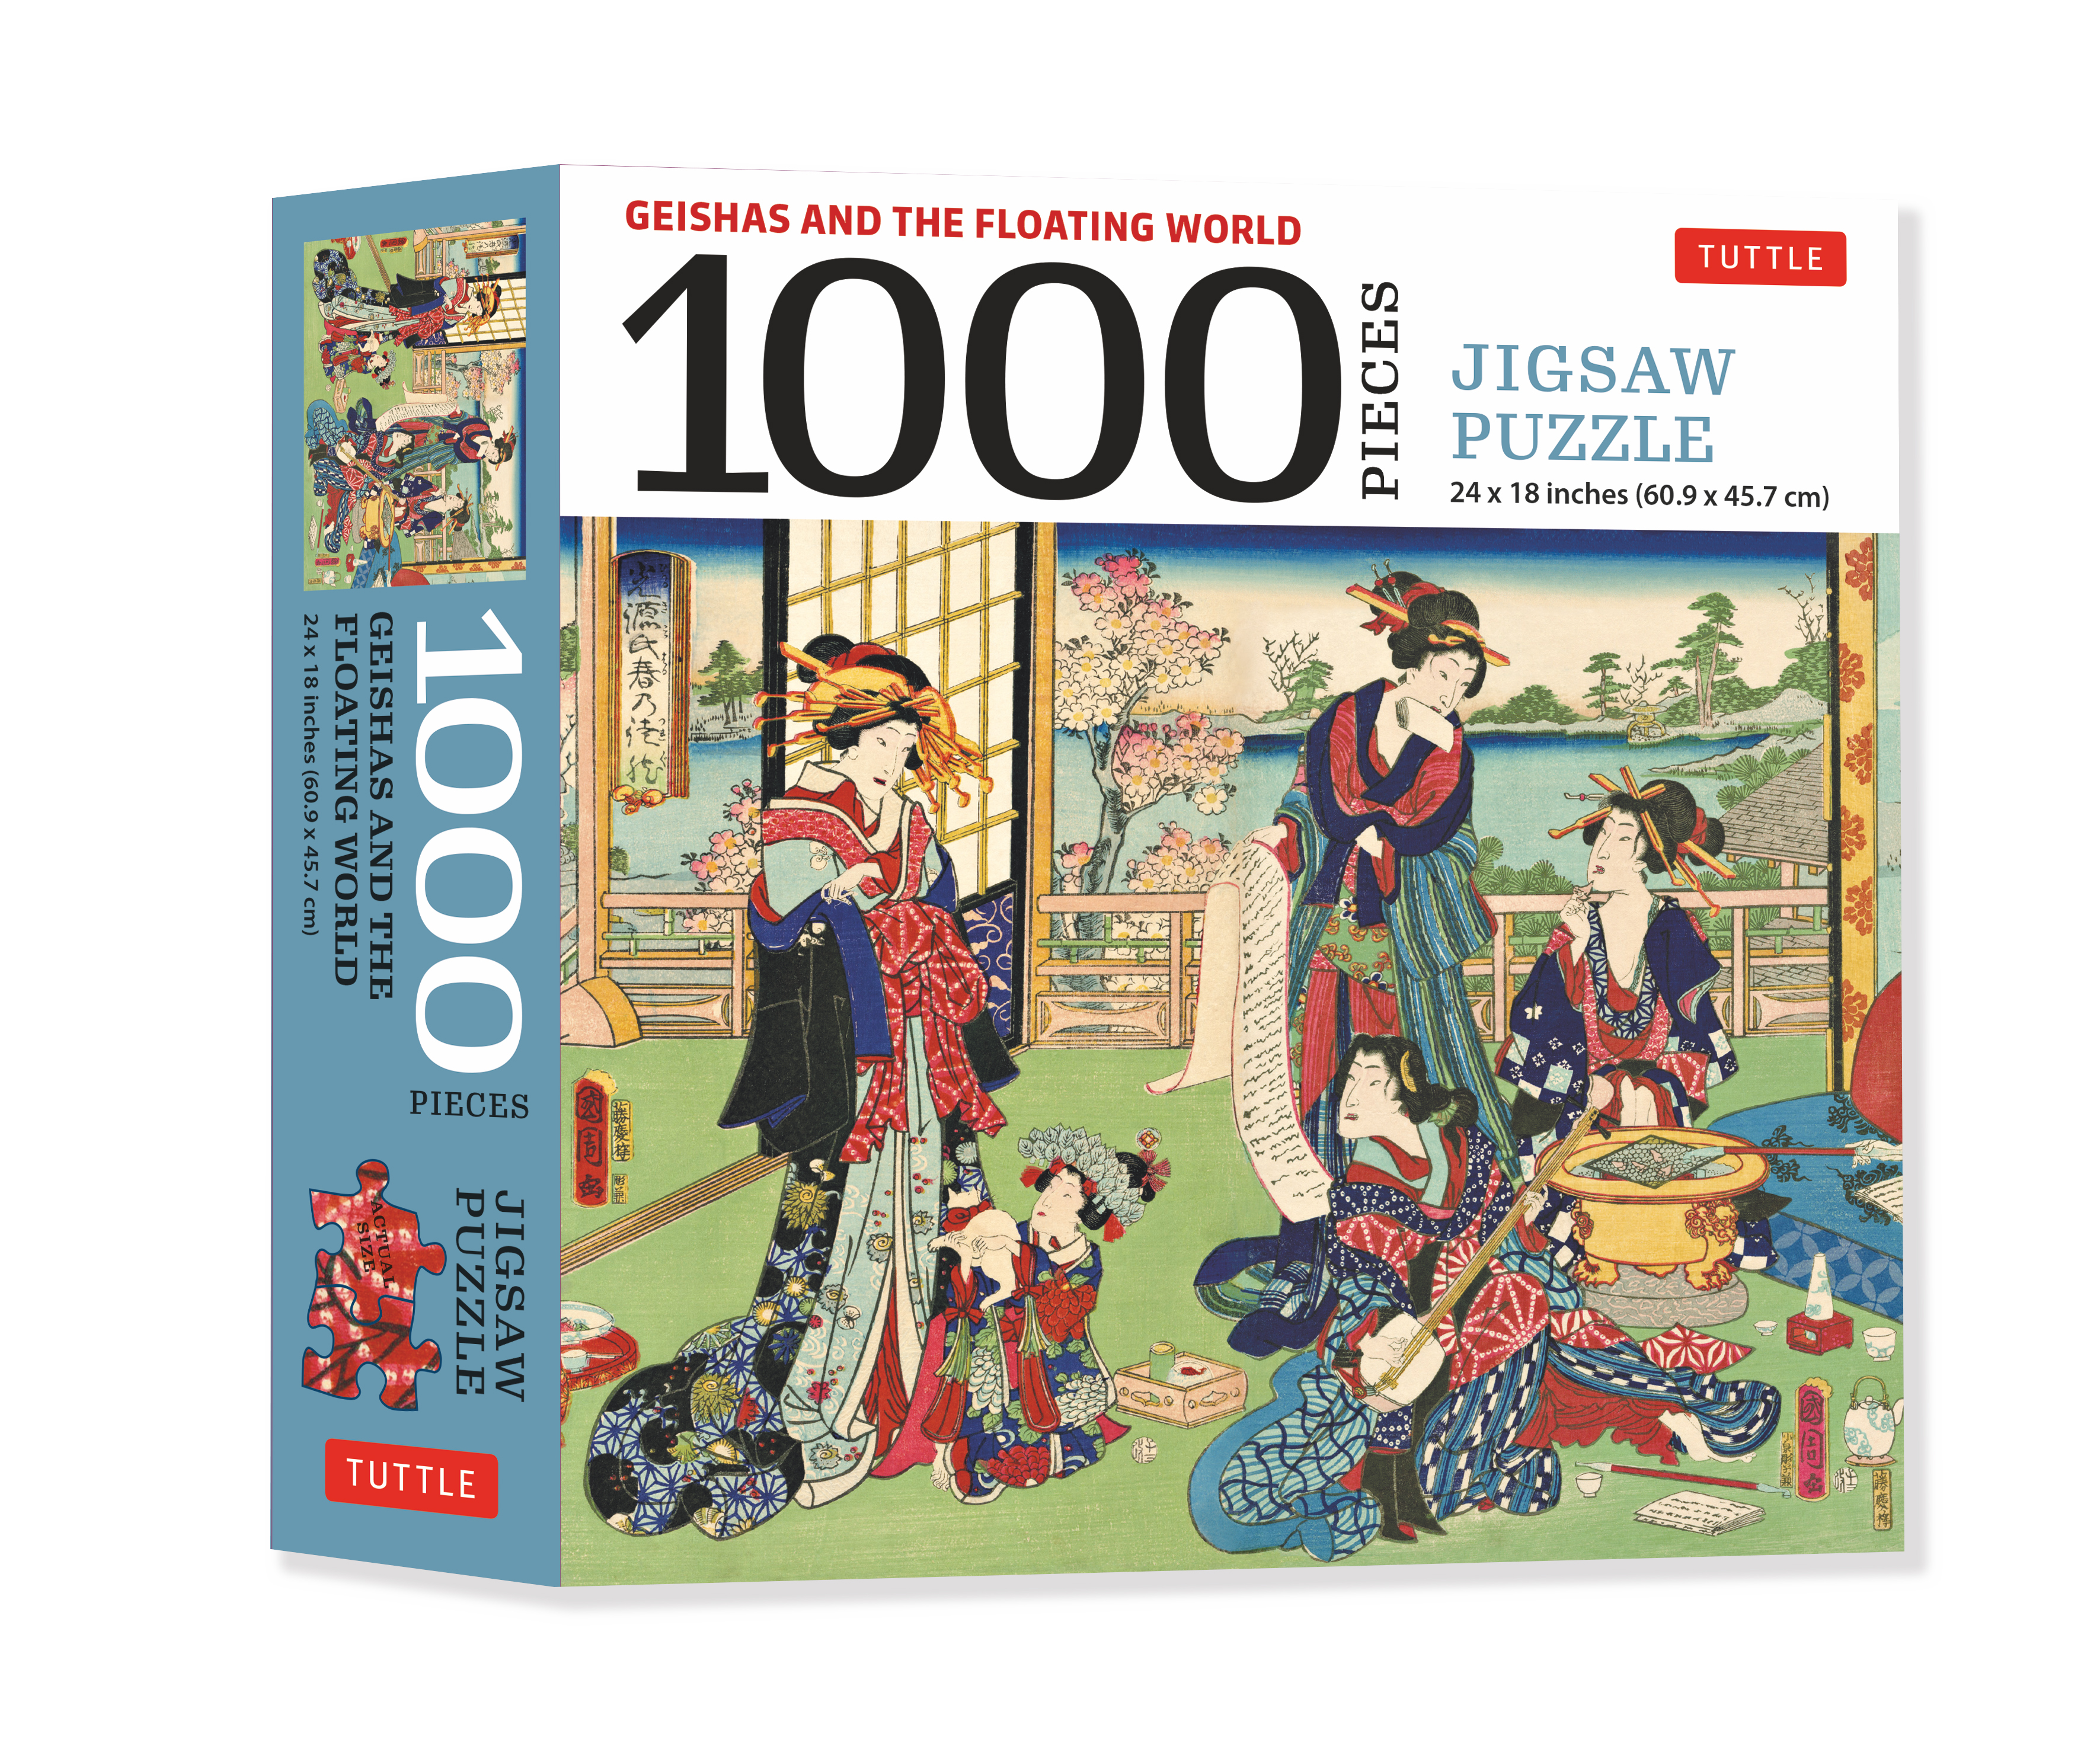 A Geishas and the Floating World - 1000 Piece Jigsaw Puzzle